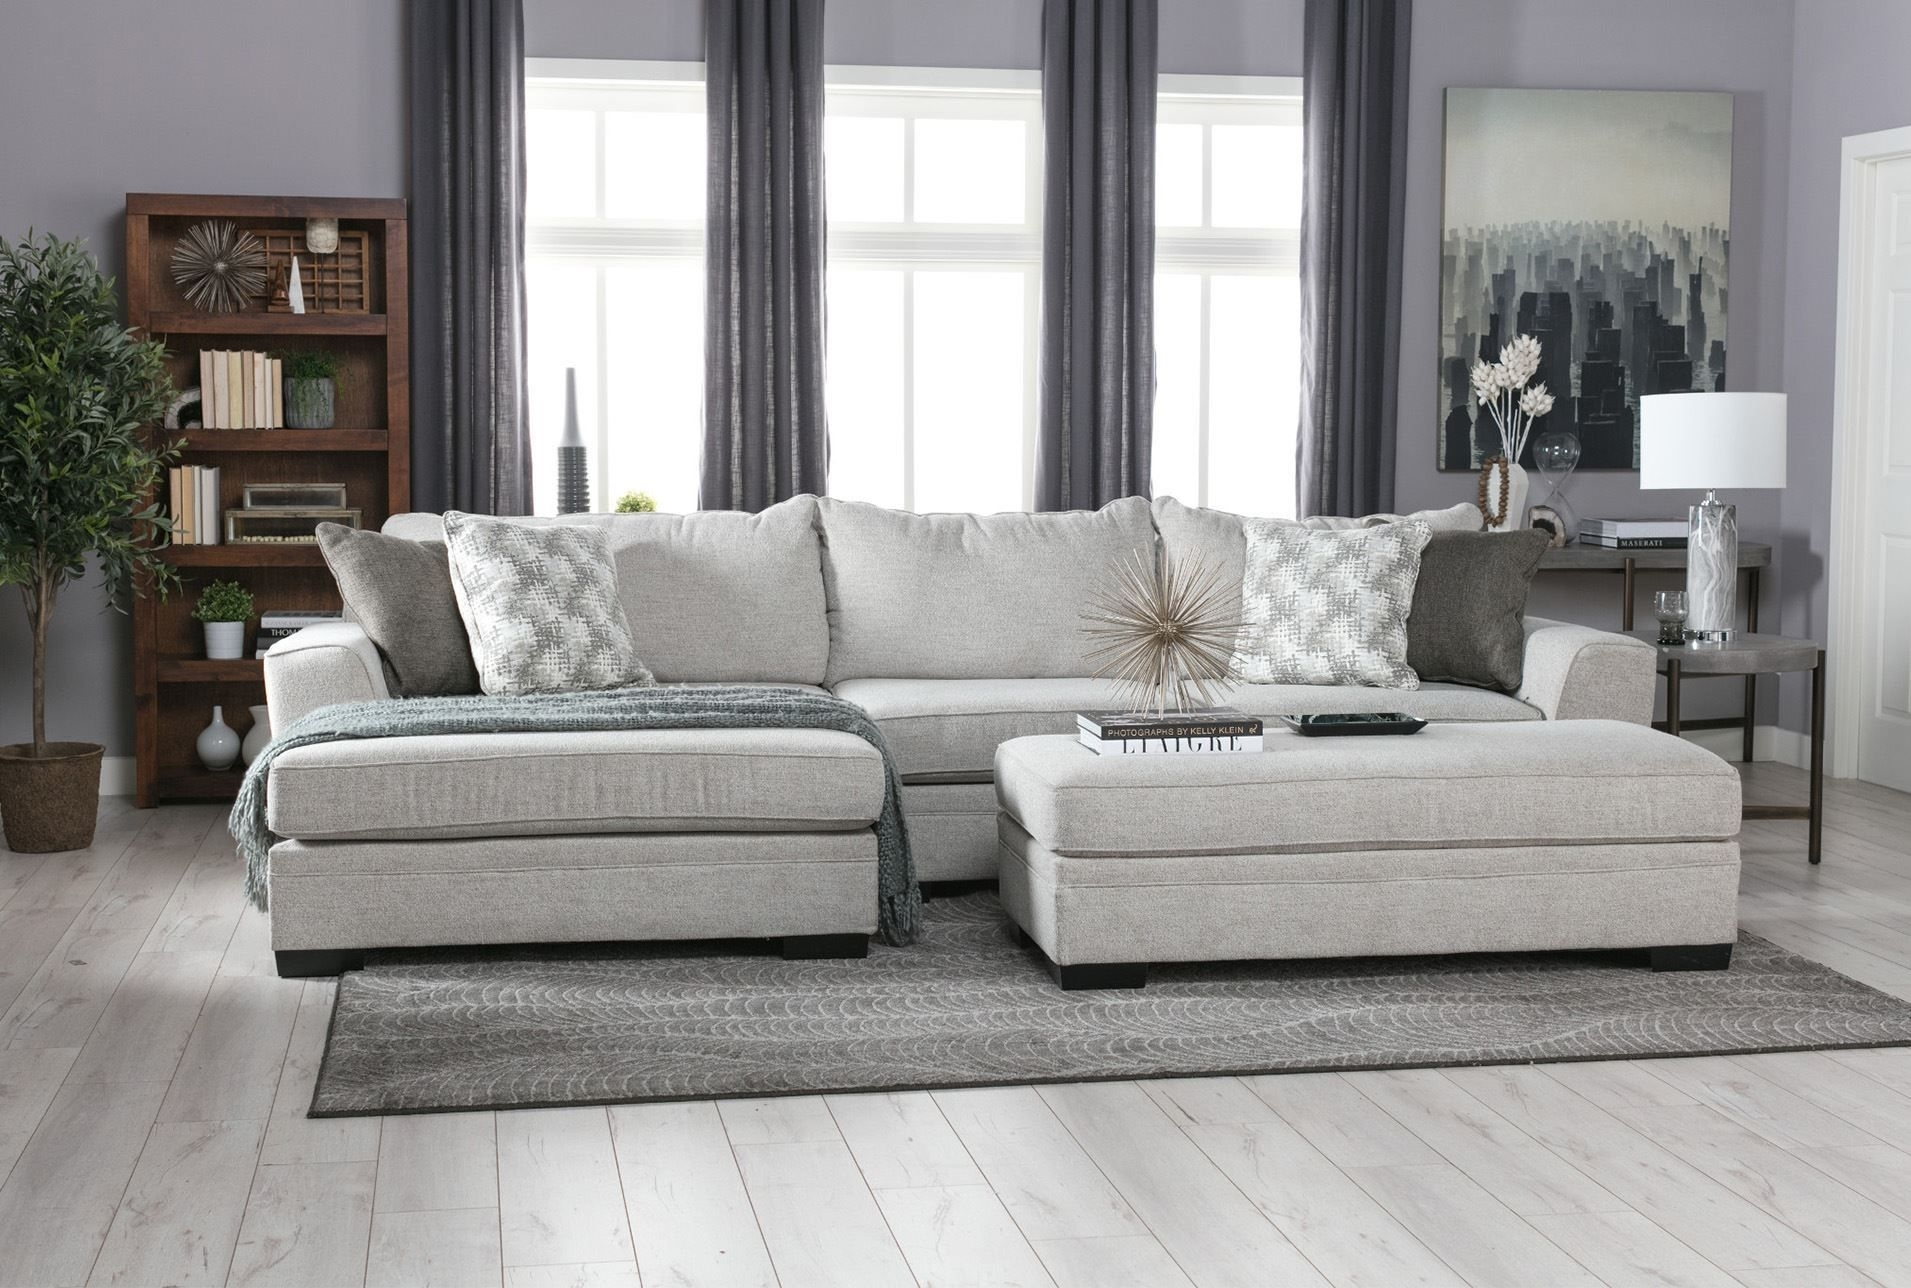 Delano 2 Piece Sectional W/laf Oversized Chaise | Sylvia Son Intended For Delano 2 Piece Sectionals With Laf Oversized Chaise (View 2 of 30)